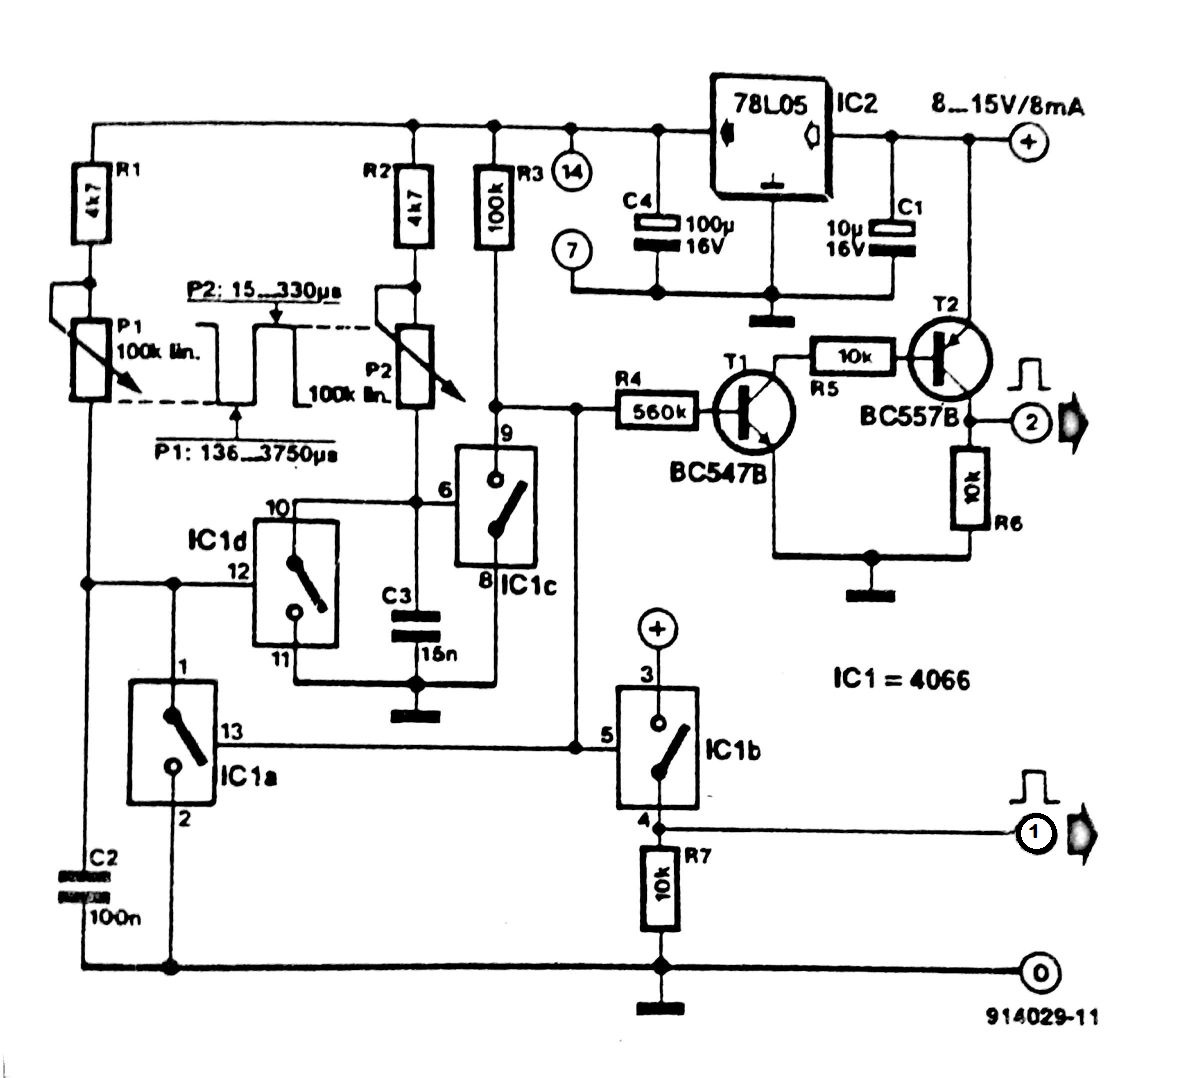 Pulse Generator with one 4066 Circuit Diagram generac panel ram wiring diagrams bolens wiring diagram, sears generac wiring diagram at n-0.co